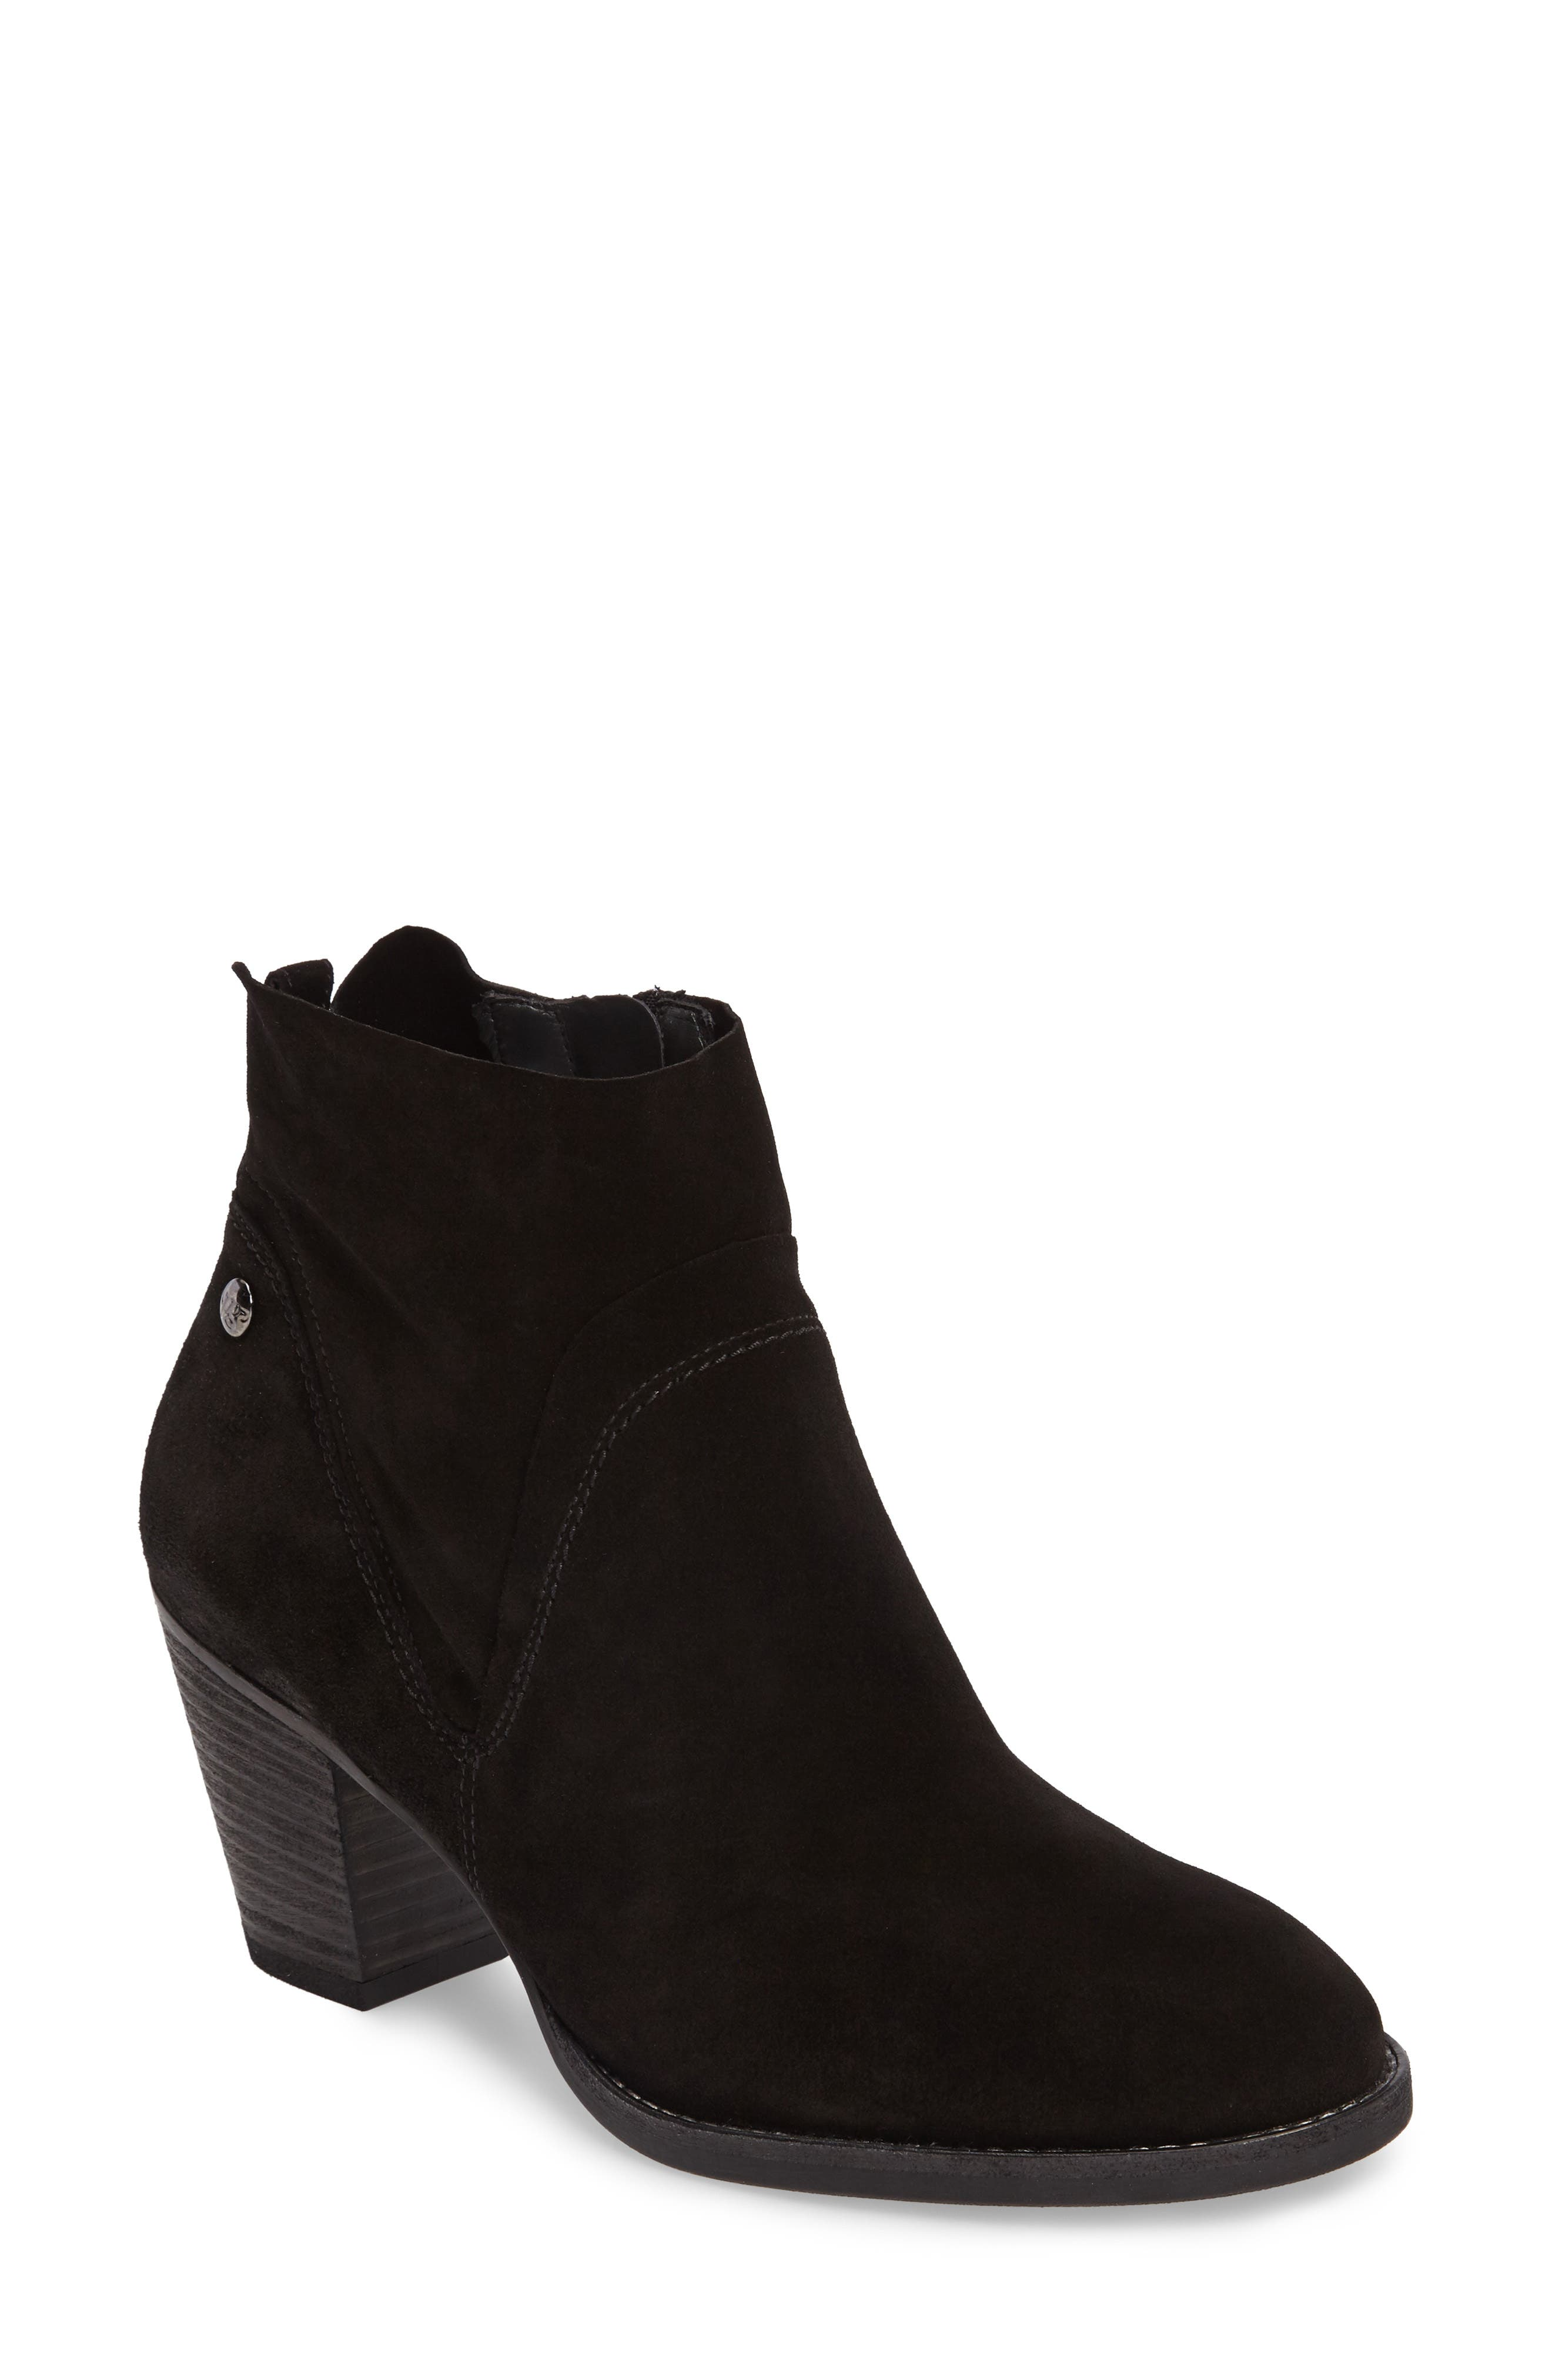 Nora Water Resistant Bootie,                             Main thumbnail 1, color,                             003